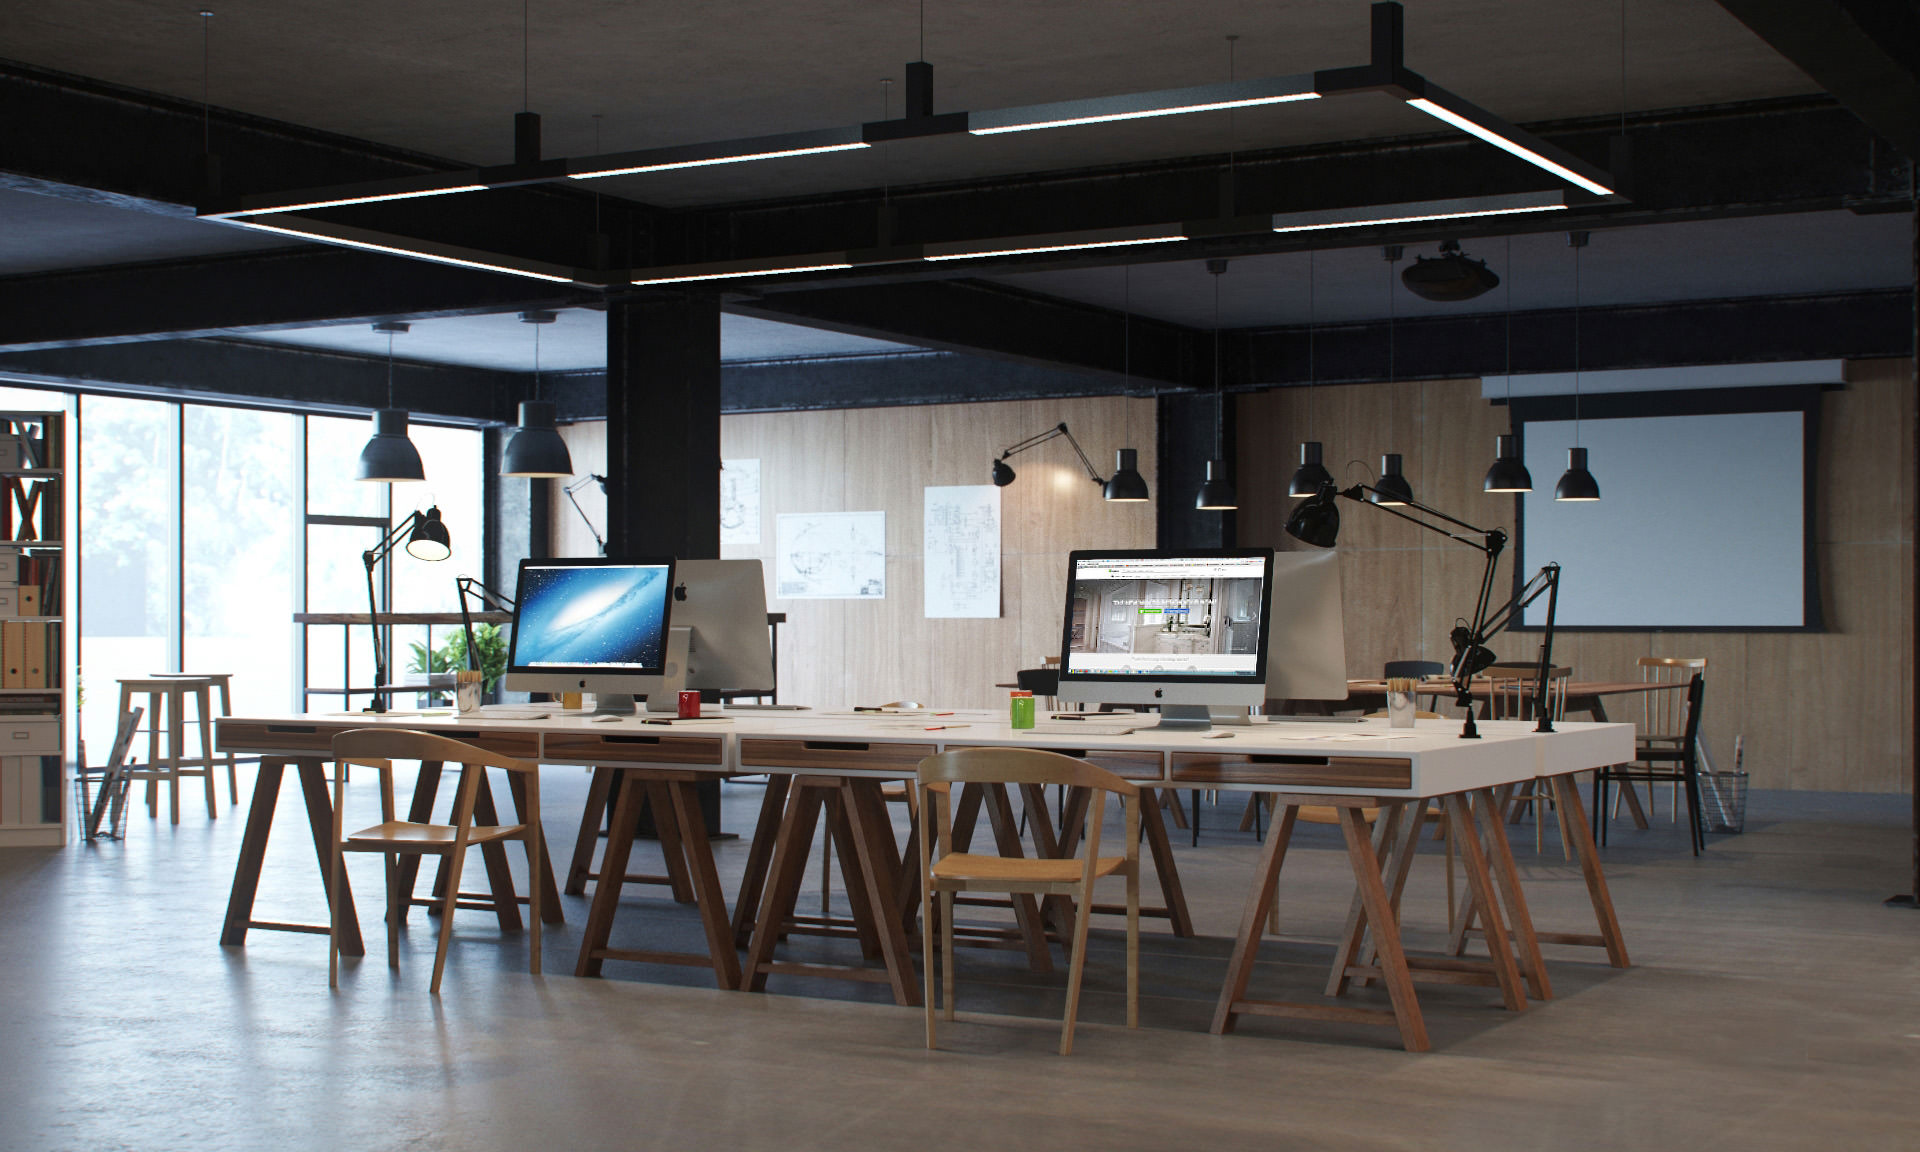 3D interior design of a workspace with desks & chairs